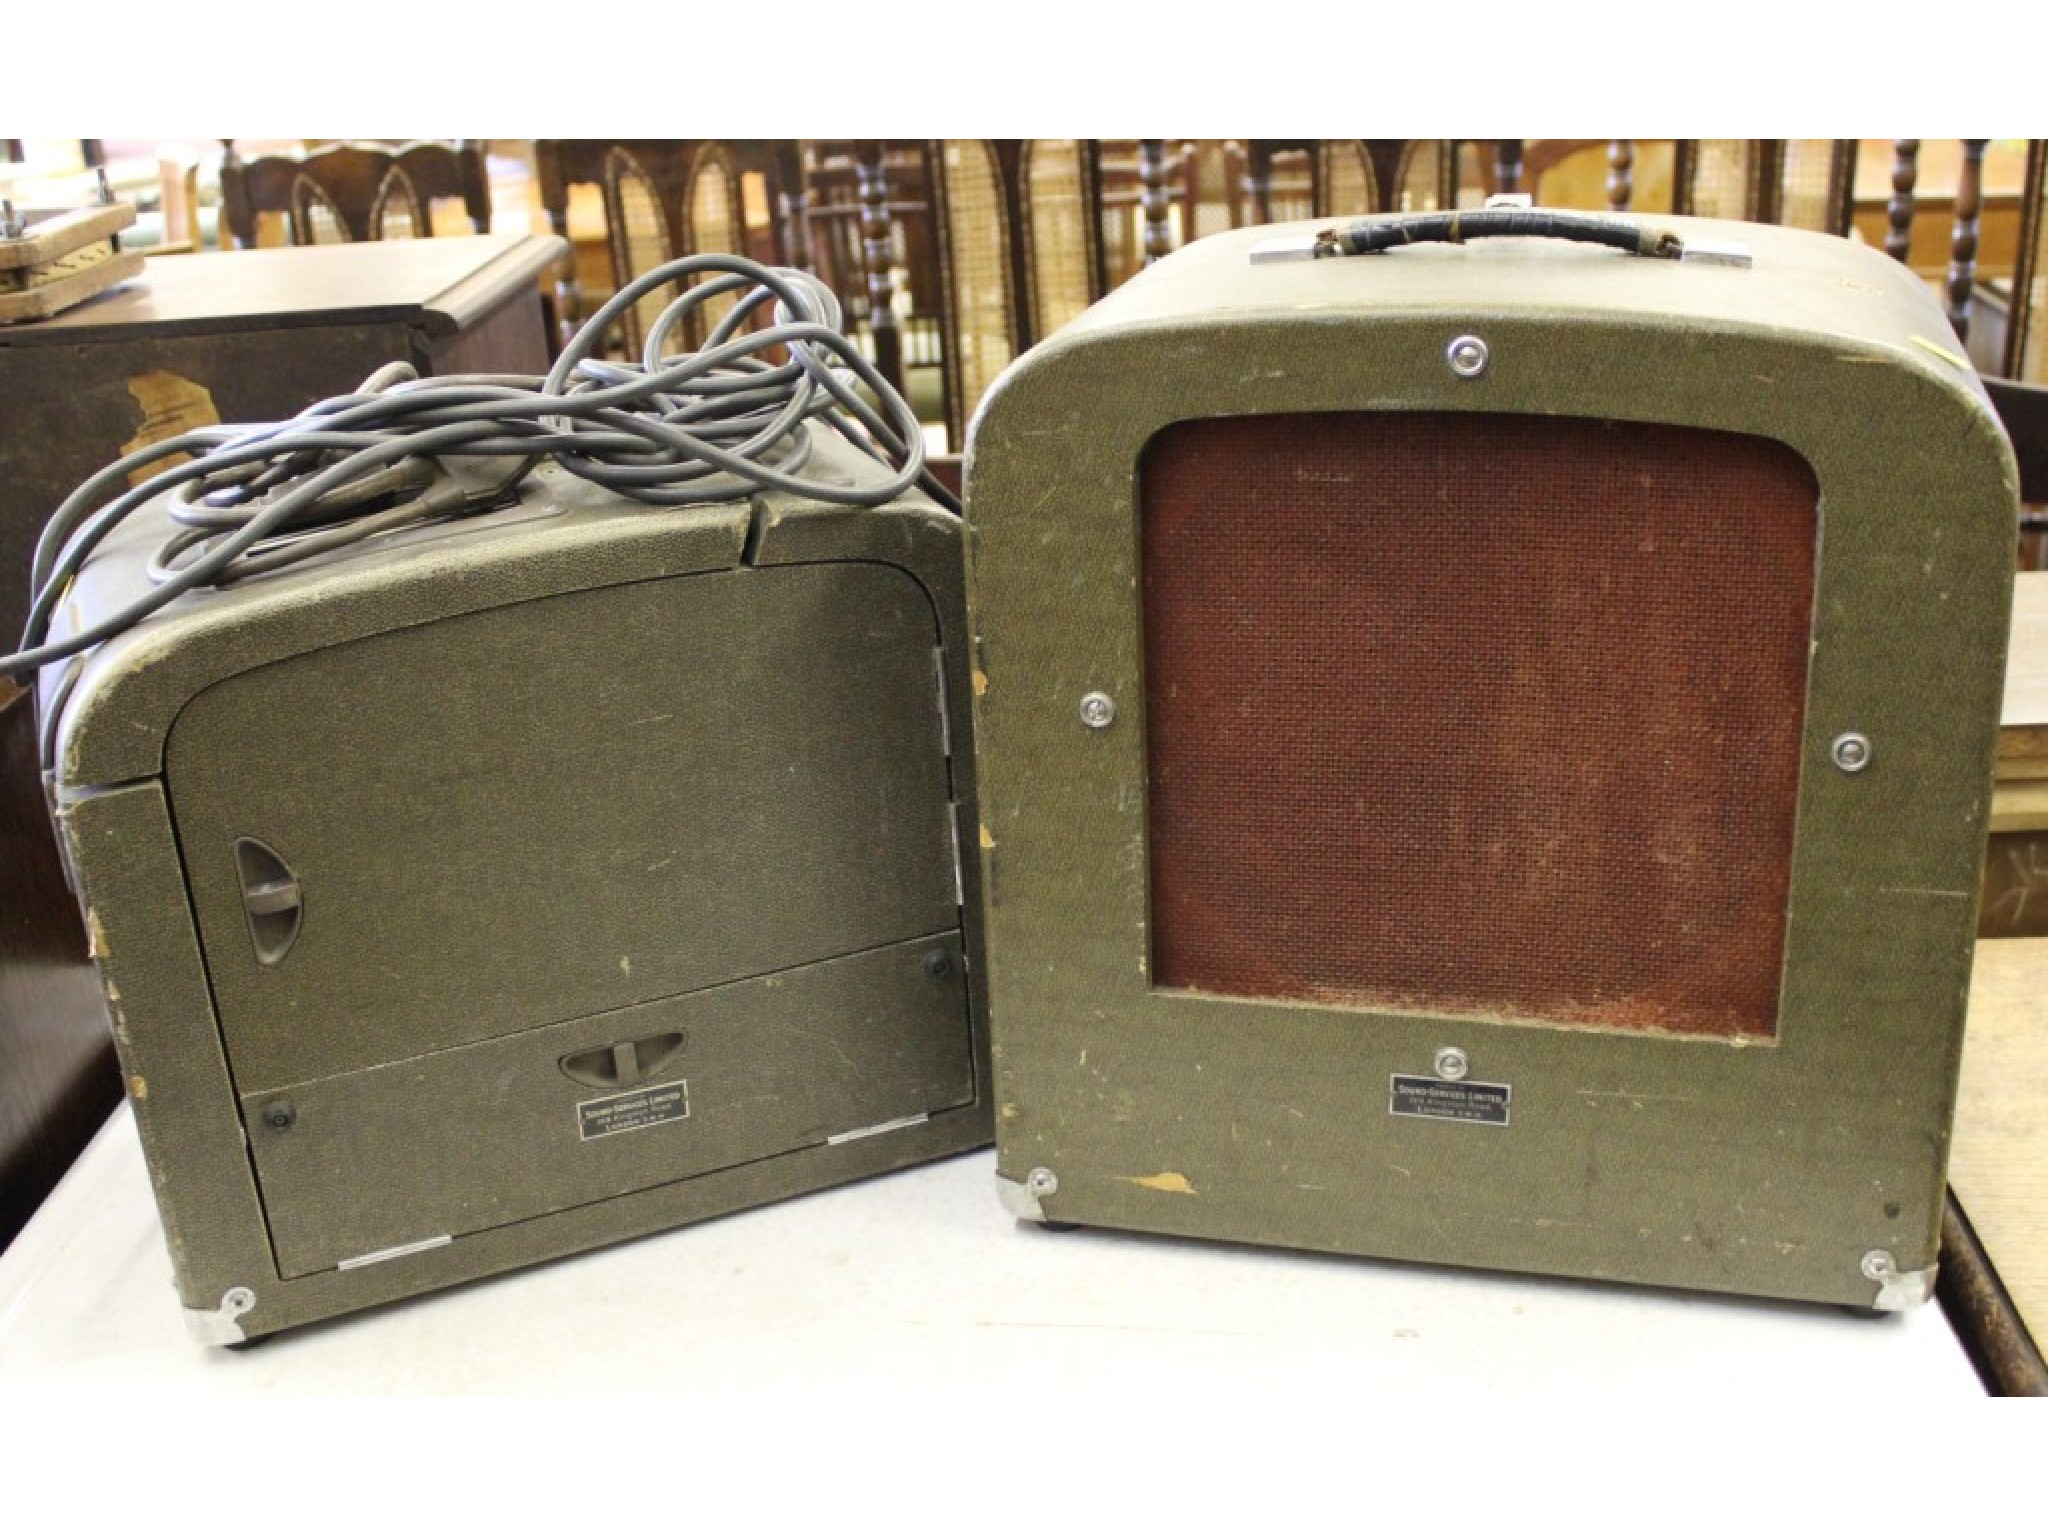 A 16mm film projector and speaker, supplied by Sound-Service Ltd, model 621